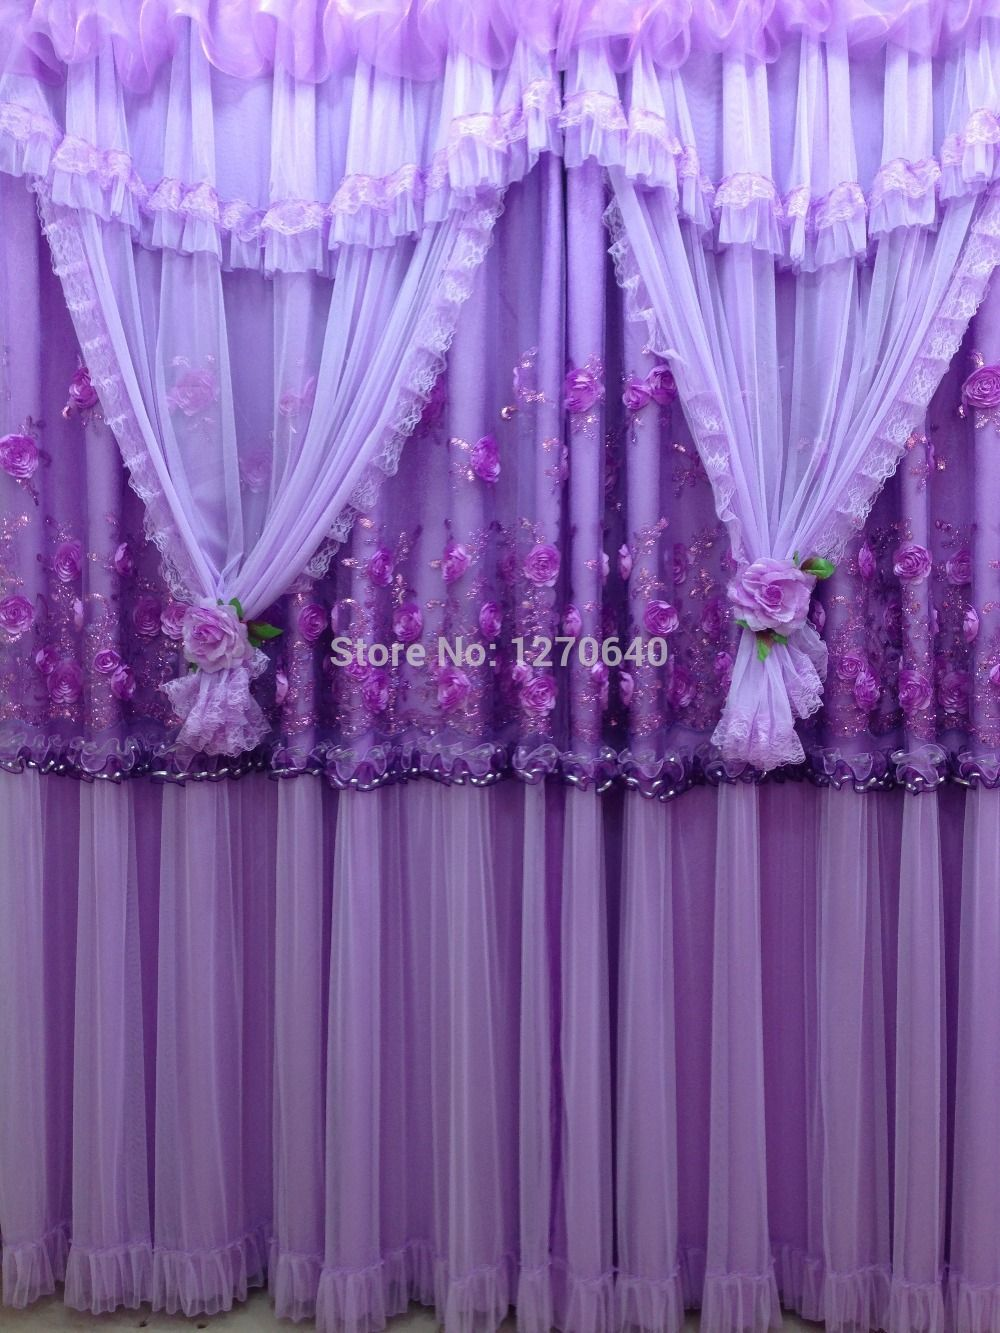 curtains design 2015 - Google Search | Drapes | Pinterest | Curtain ... for Curtains For Bedroom Windows With Designs 2015  111bof